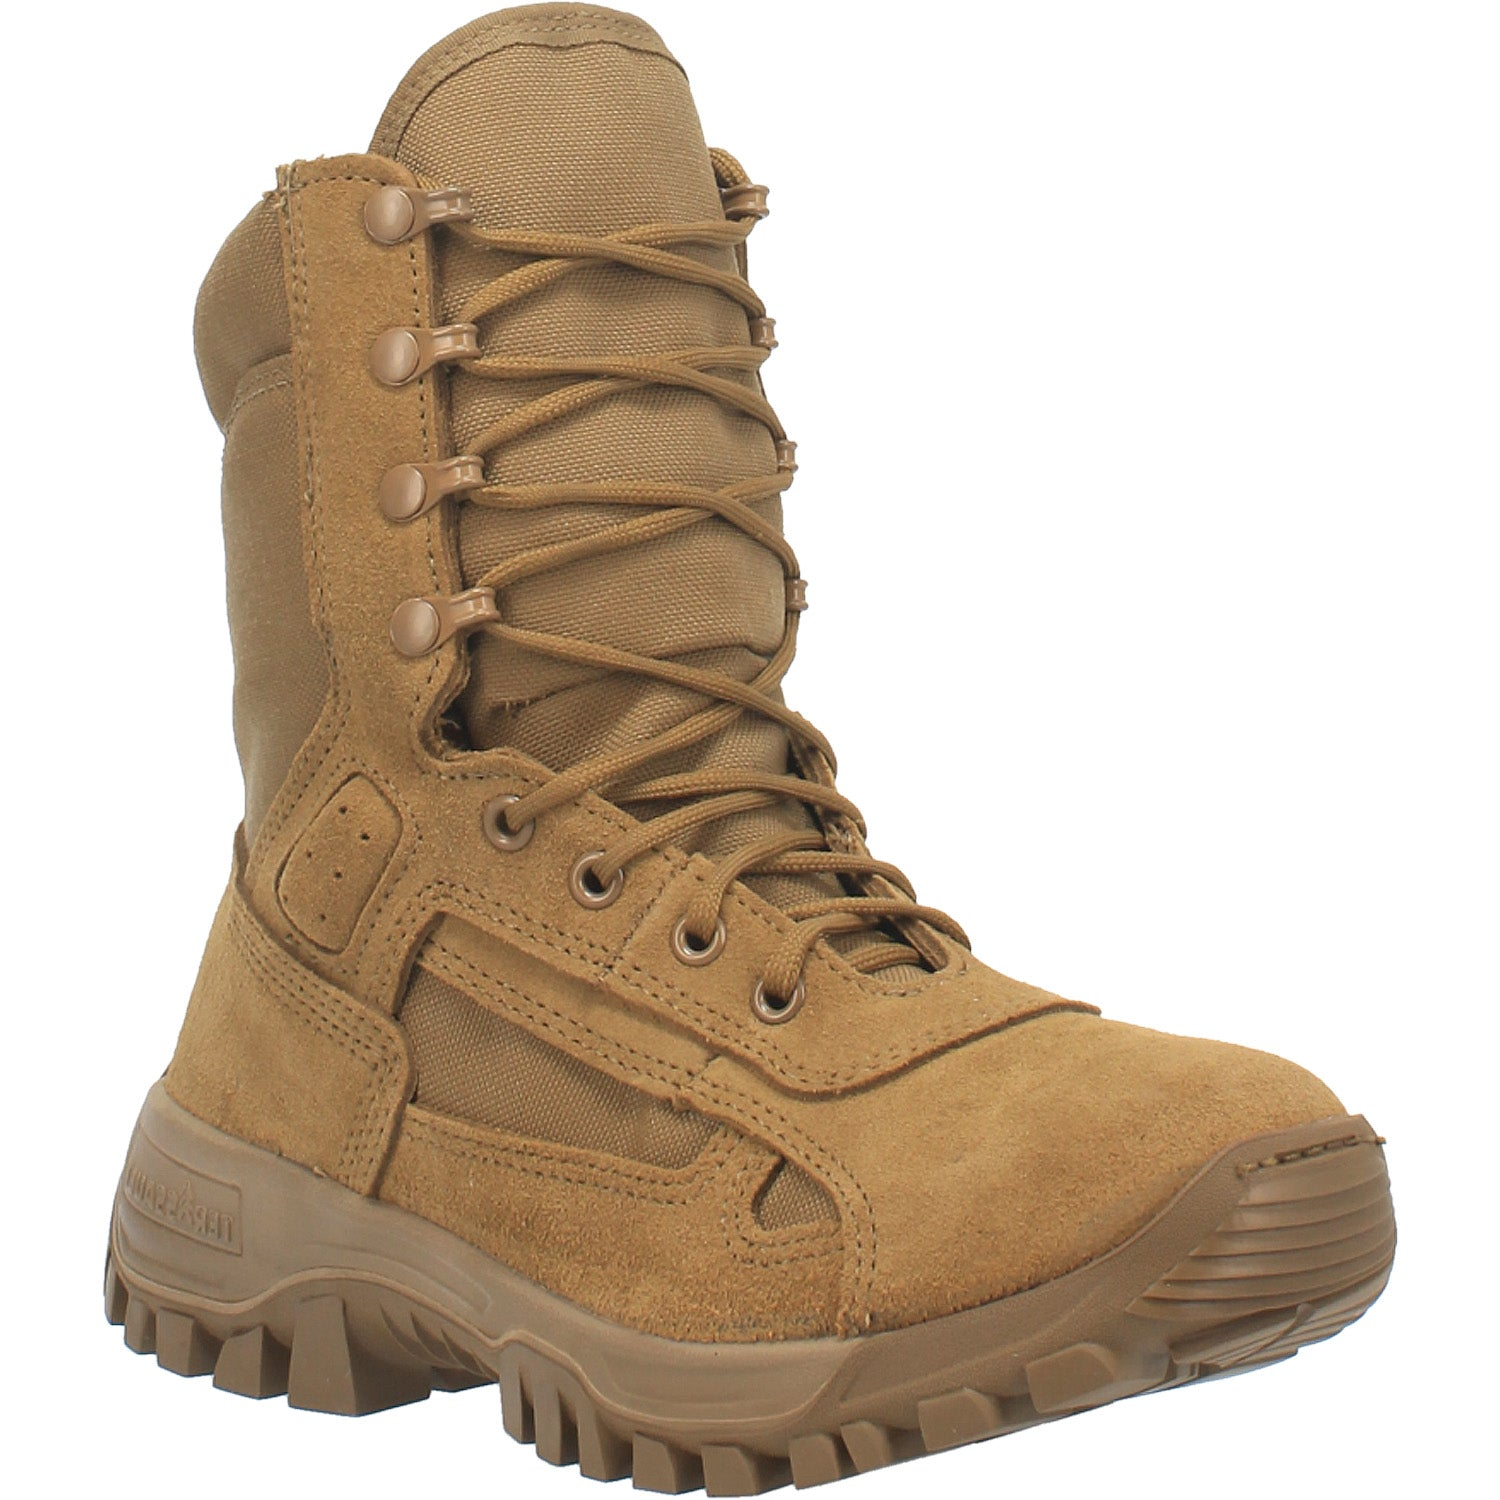 Terassault T1 Hot Weather Performance Combat Boot 14940747530282